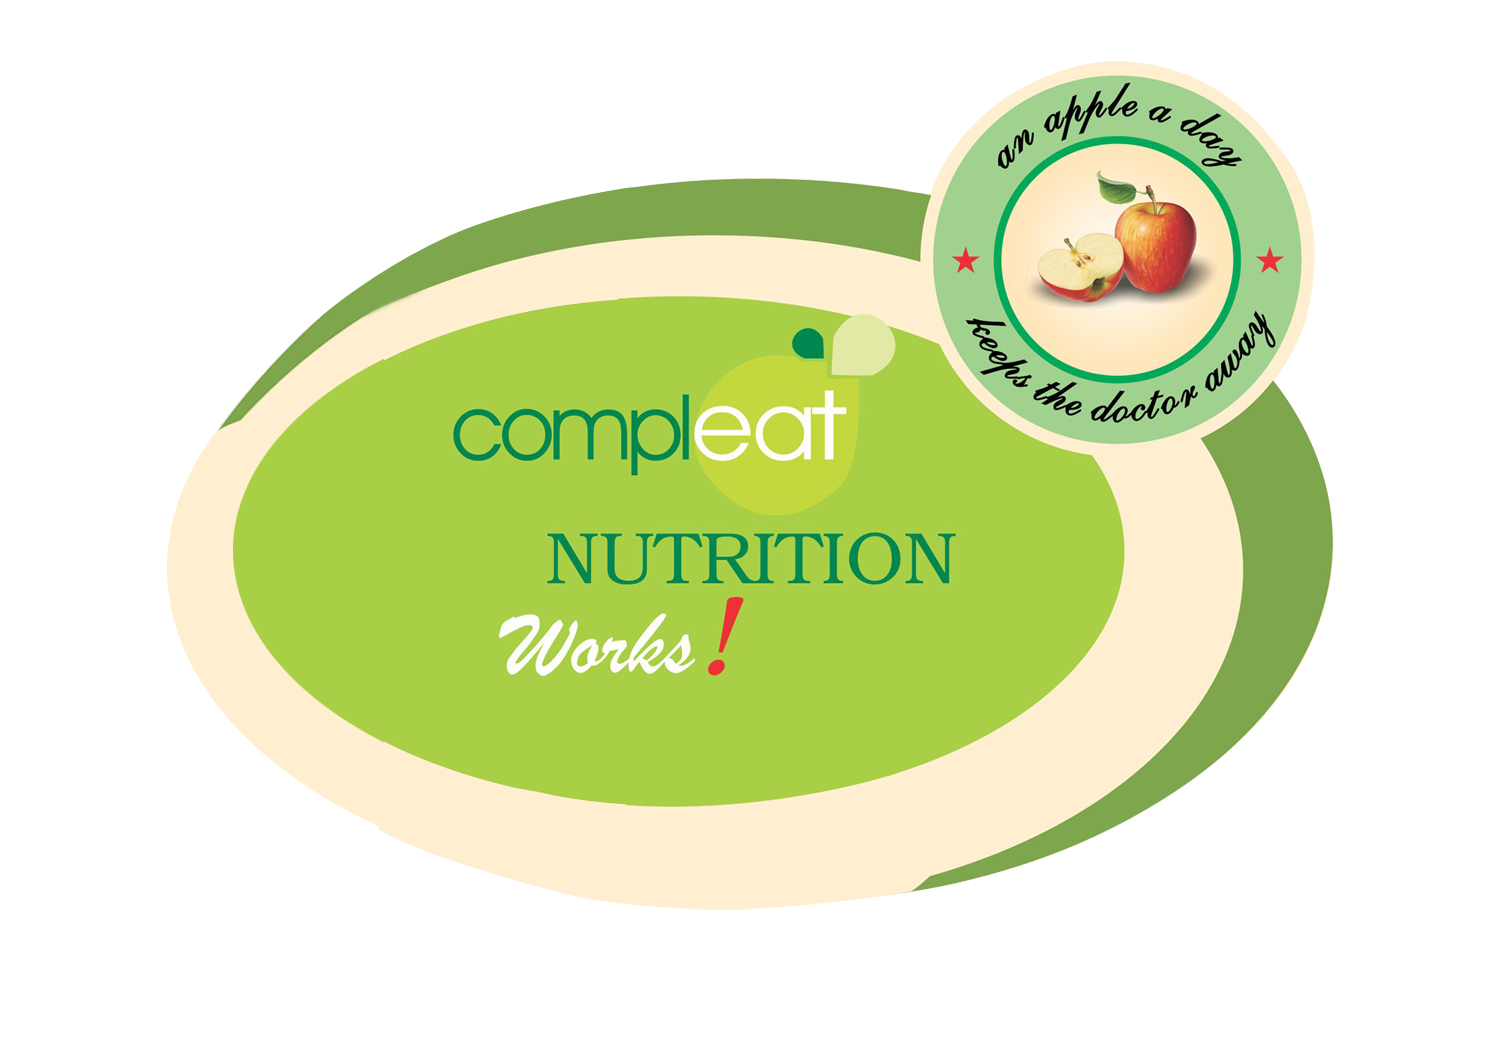 Compleat Nutrition